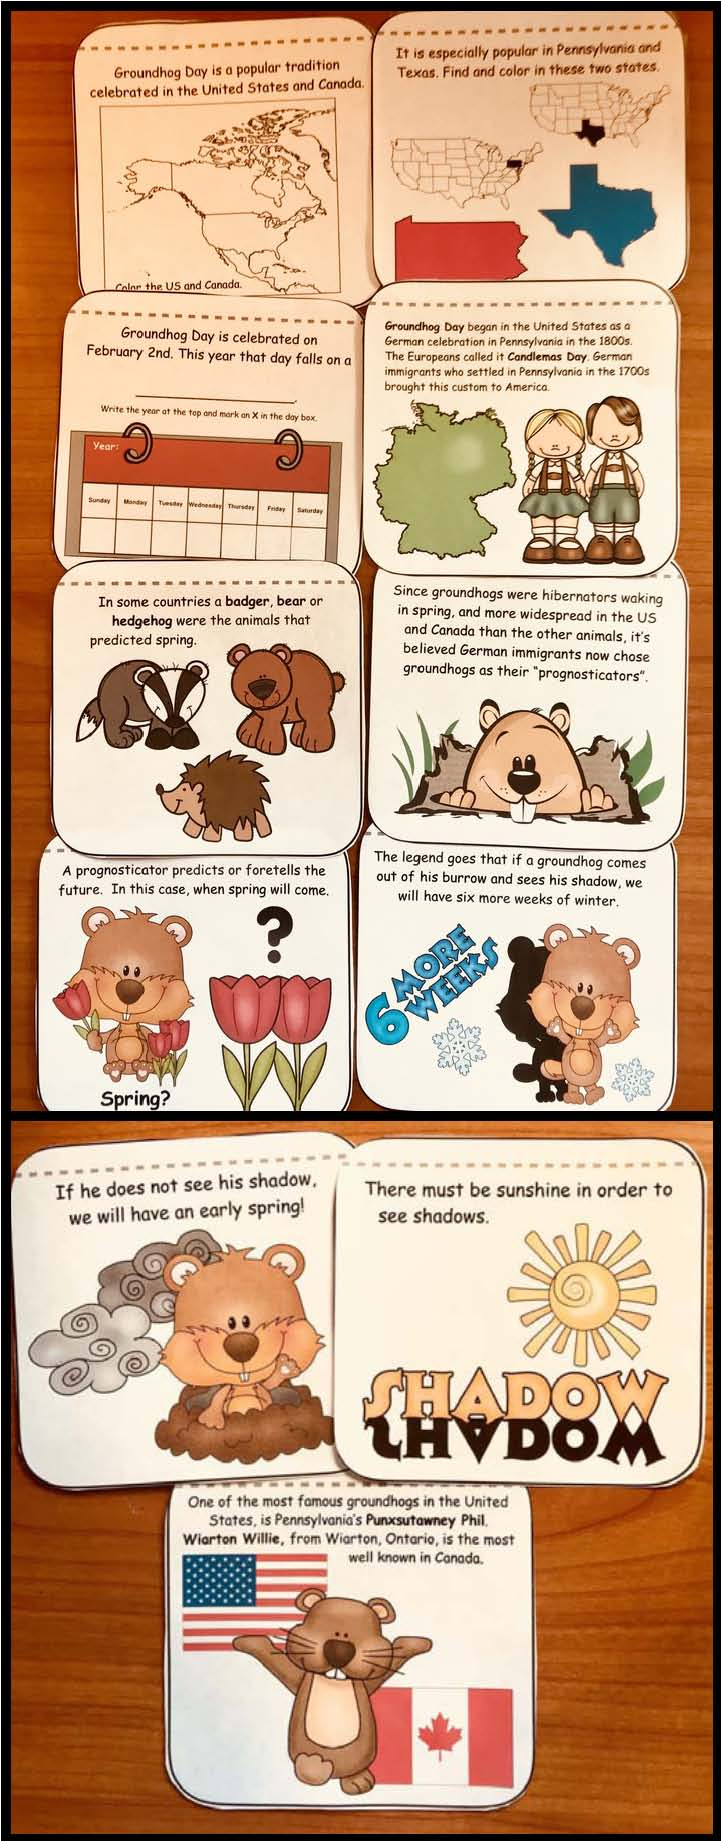 groundhog fun facts, groundhog crafts, pictures of real groundhogs, groundhog day crafts, groundhog day card, groundhog centers, groundhog bulletin boards, writing prompts for February, non-fiction groundhogs, February bulletin board ideas